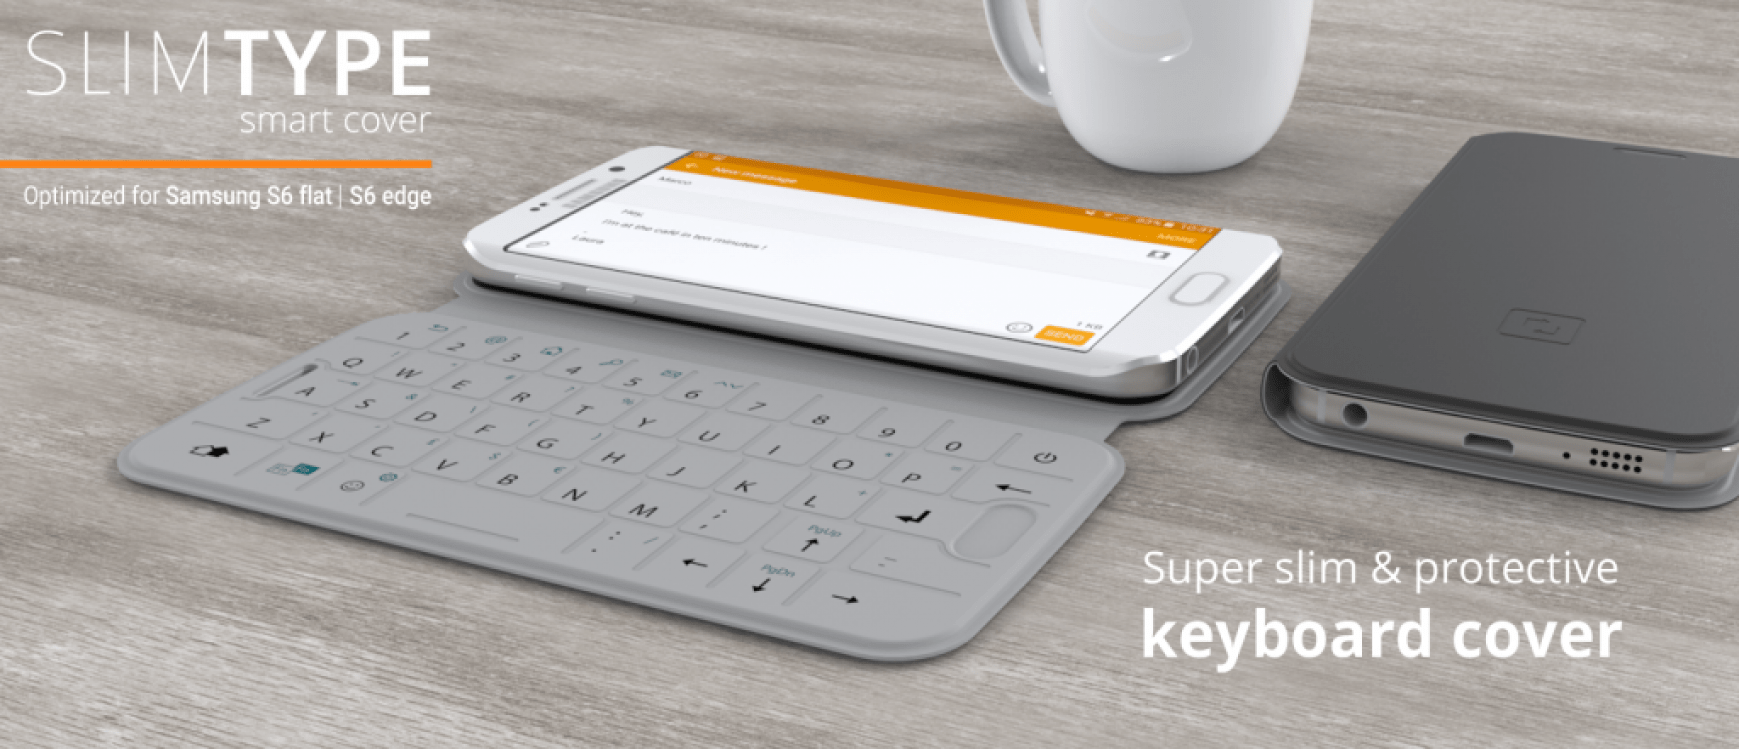 Galaxy S6 and S6 edge get NFC-enabled QWERTY keyboard case